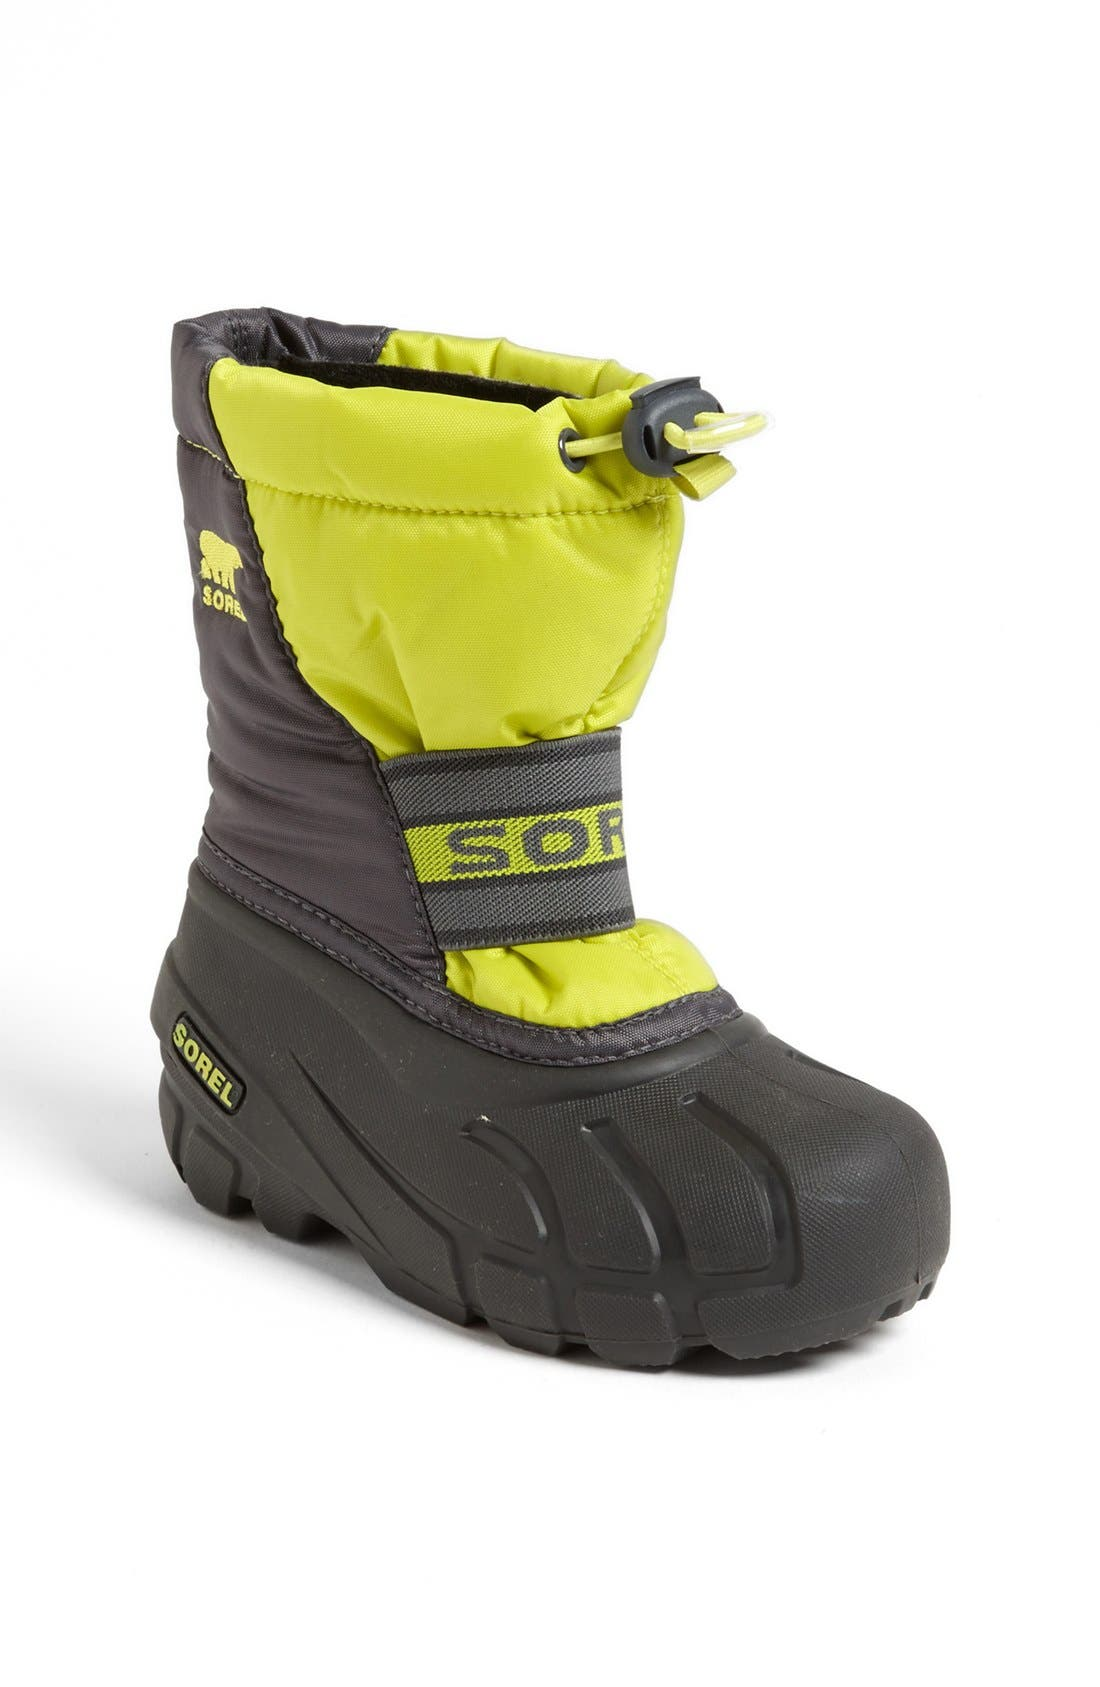 Alternate Image 1 Selected - SOREL 'Cub' Snow Boot (Toddler & Little Kid)